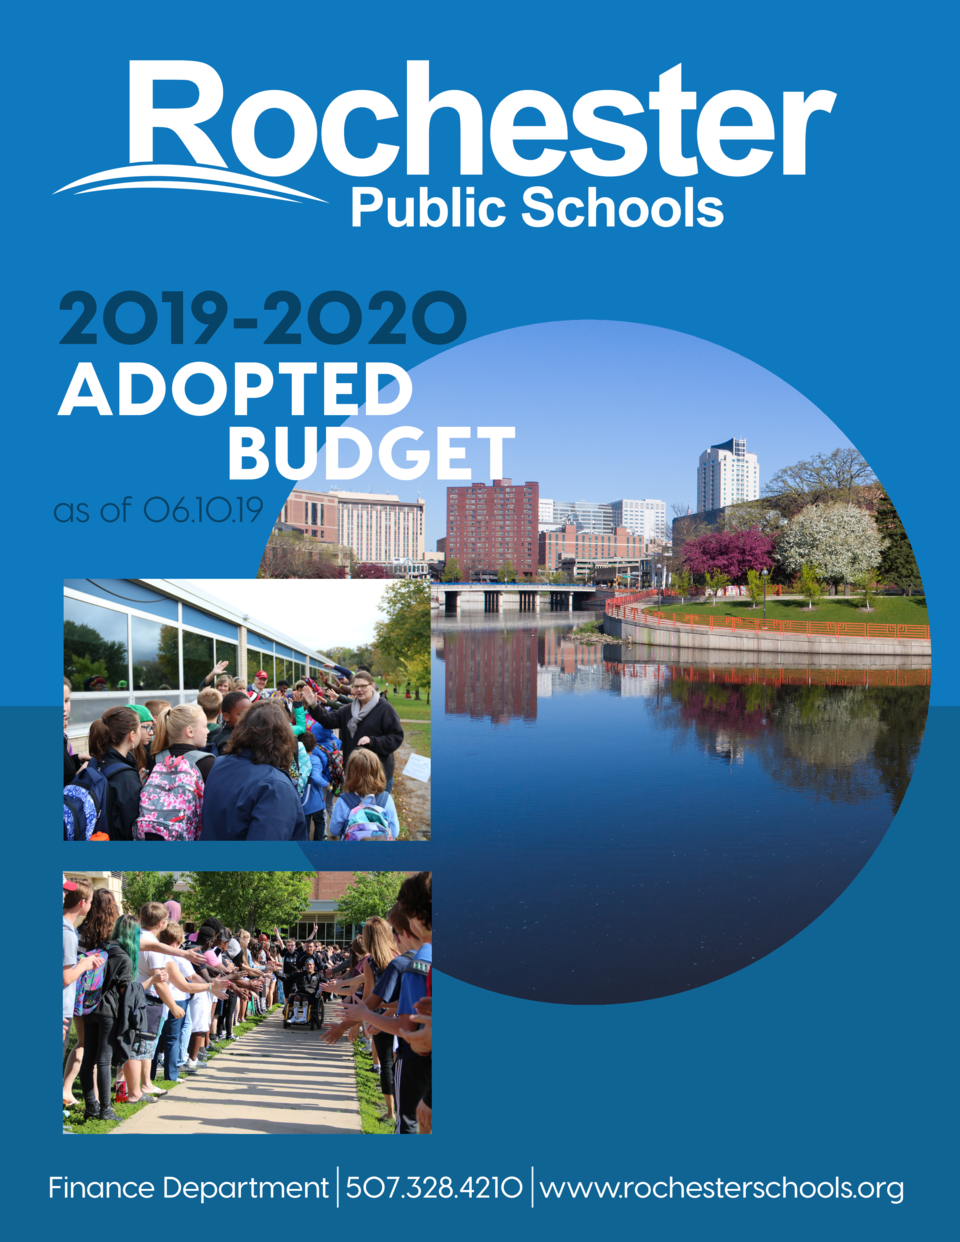 2019-2020 ADOPTED BUDGET  as of 06.10.19  Finance Department 507.328.4210 www.rochesterschools.org 1